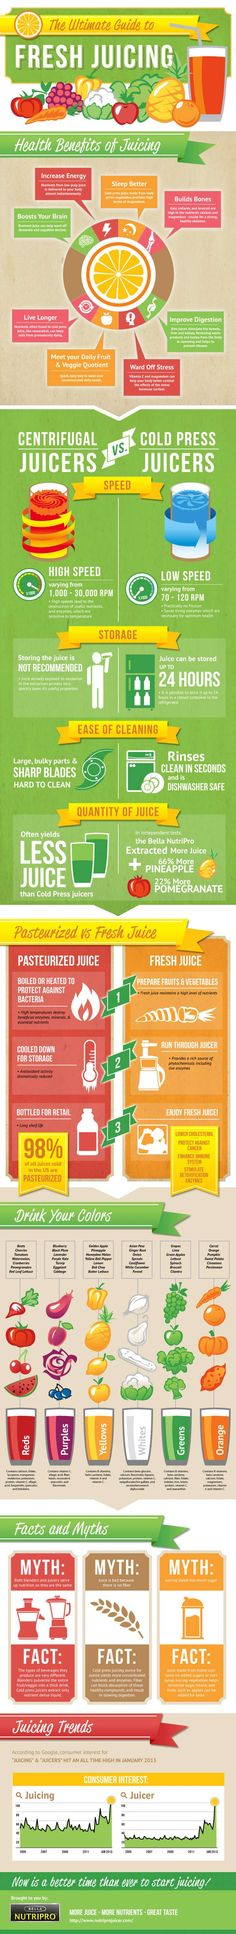 Juicing To Reduce The Risk Of Alzheimer's